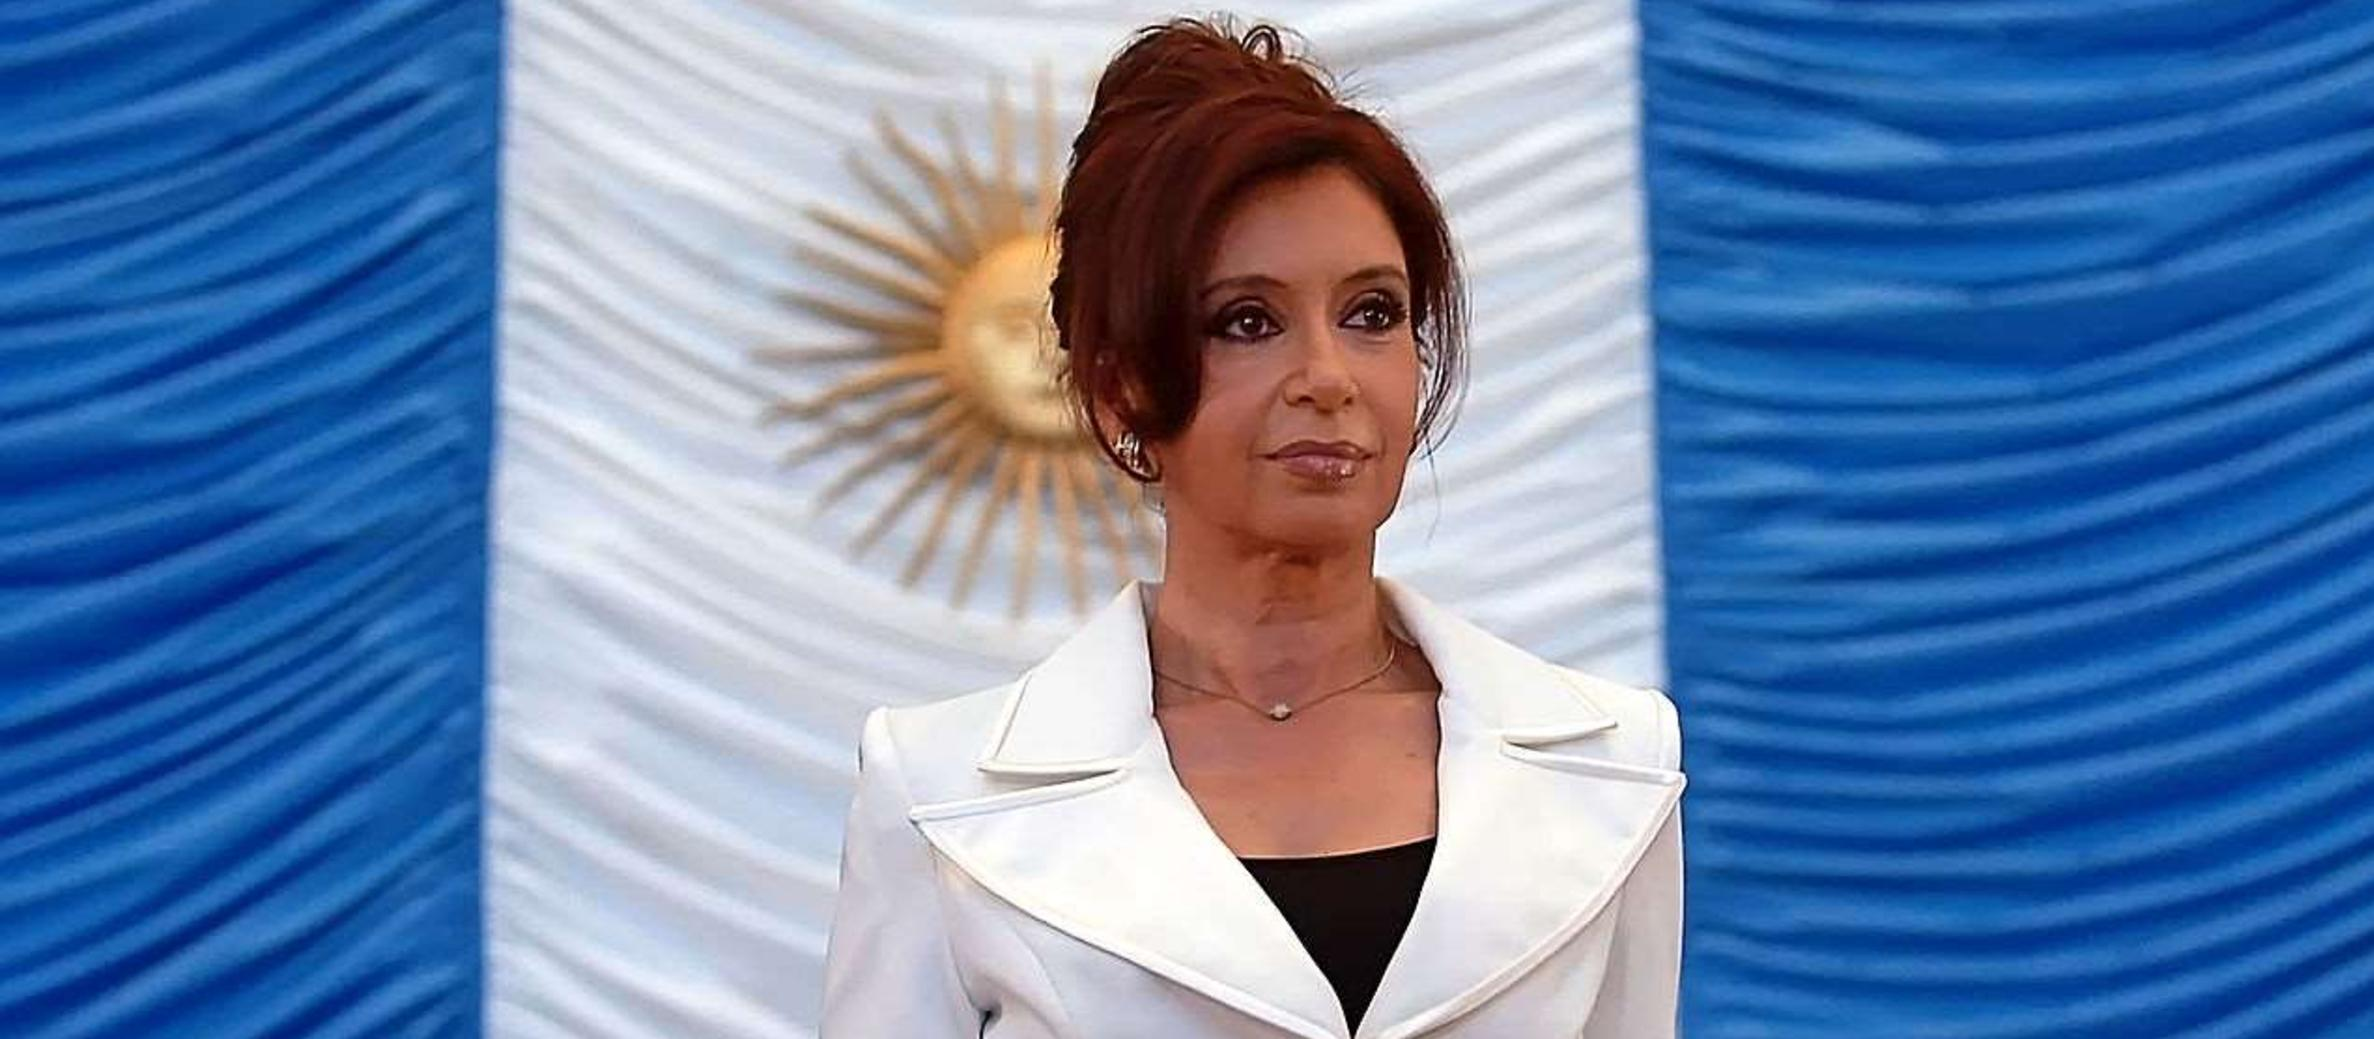 Argentinian president criticised for 'Merchant of Venice' link to nation's economic troubles